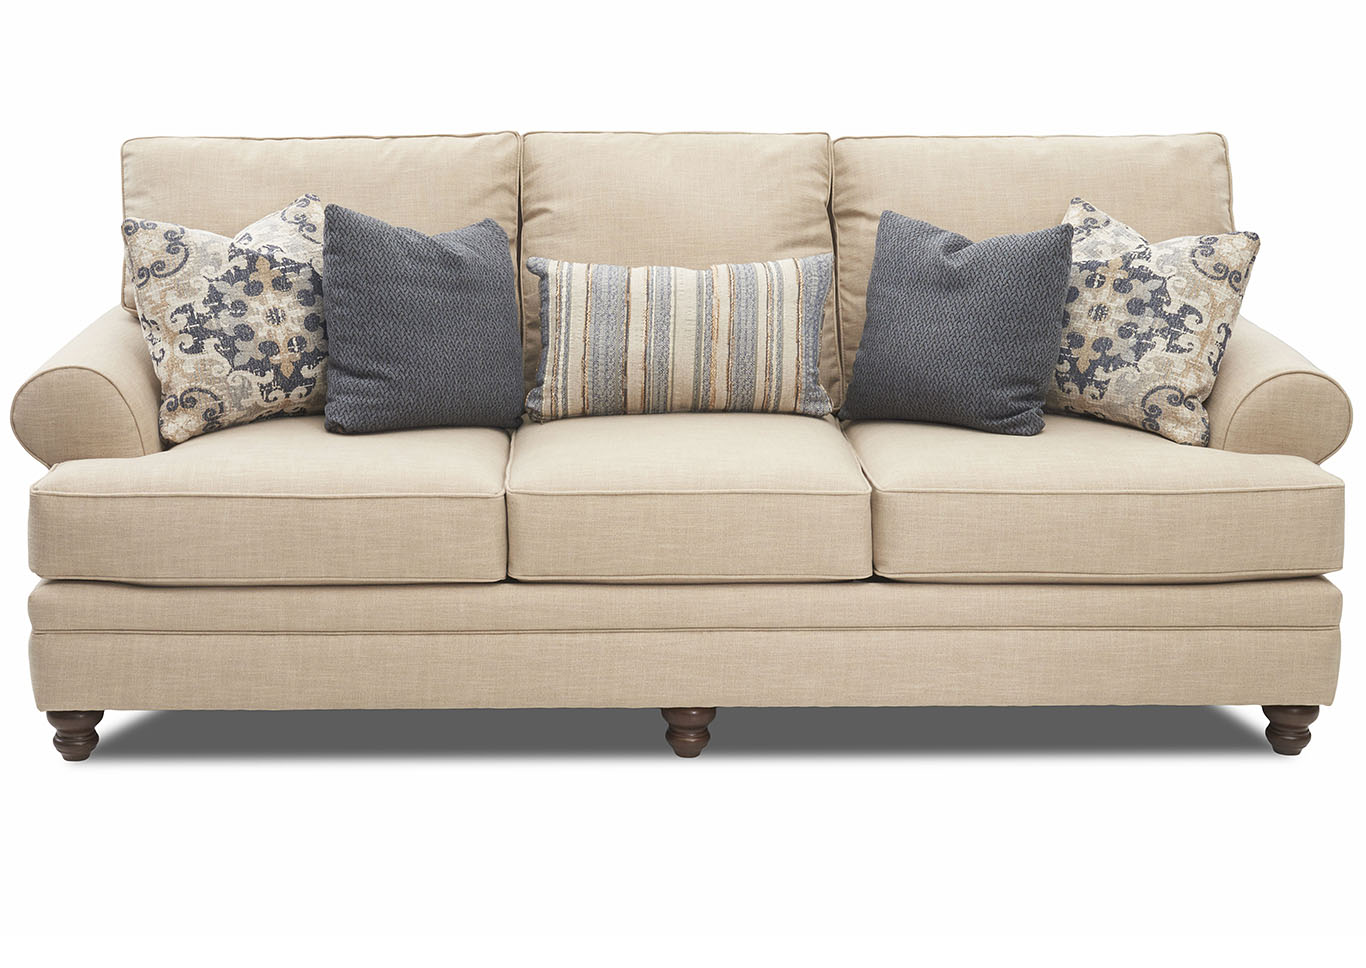 Darcy Beige Stationary Fabric Sofa,Klaussner Home Furnishings